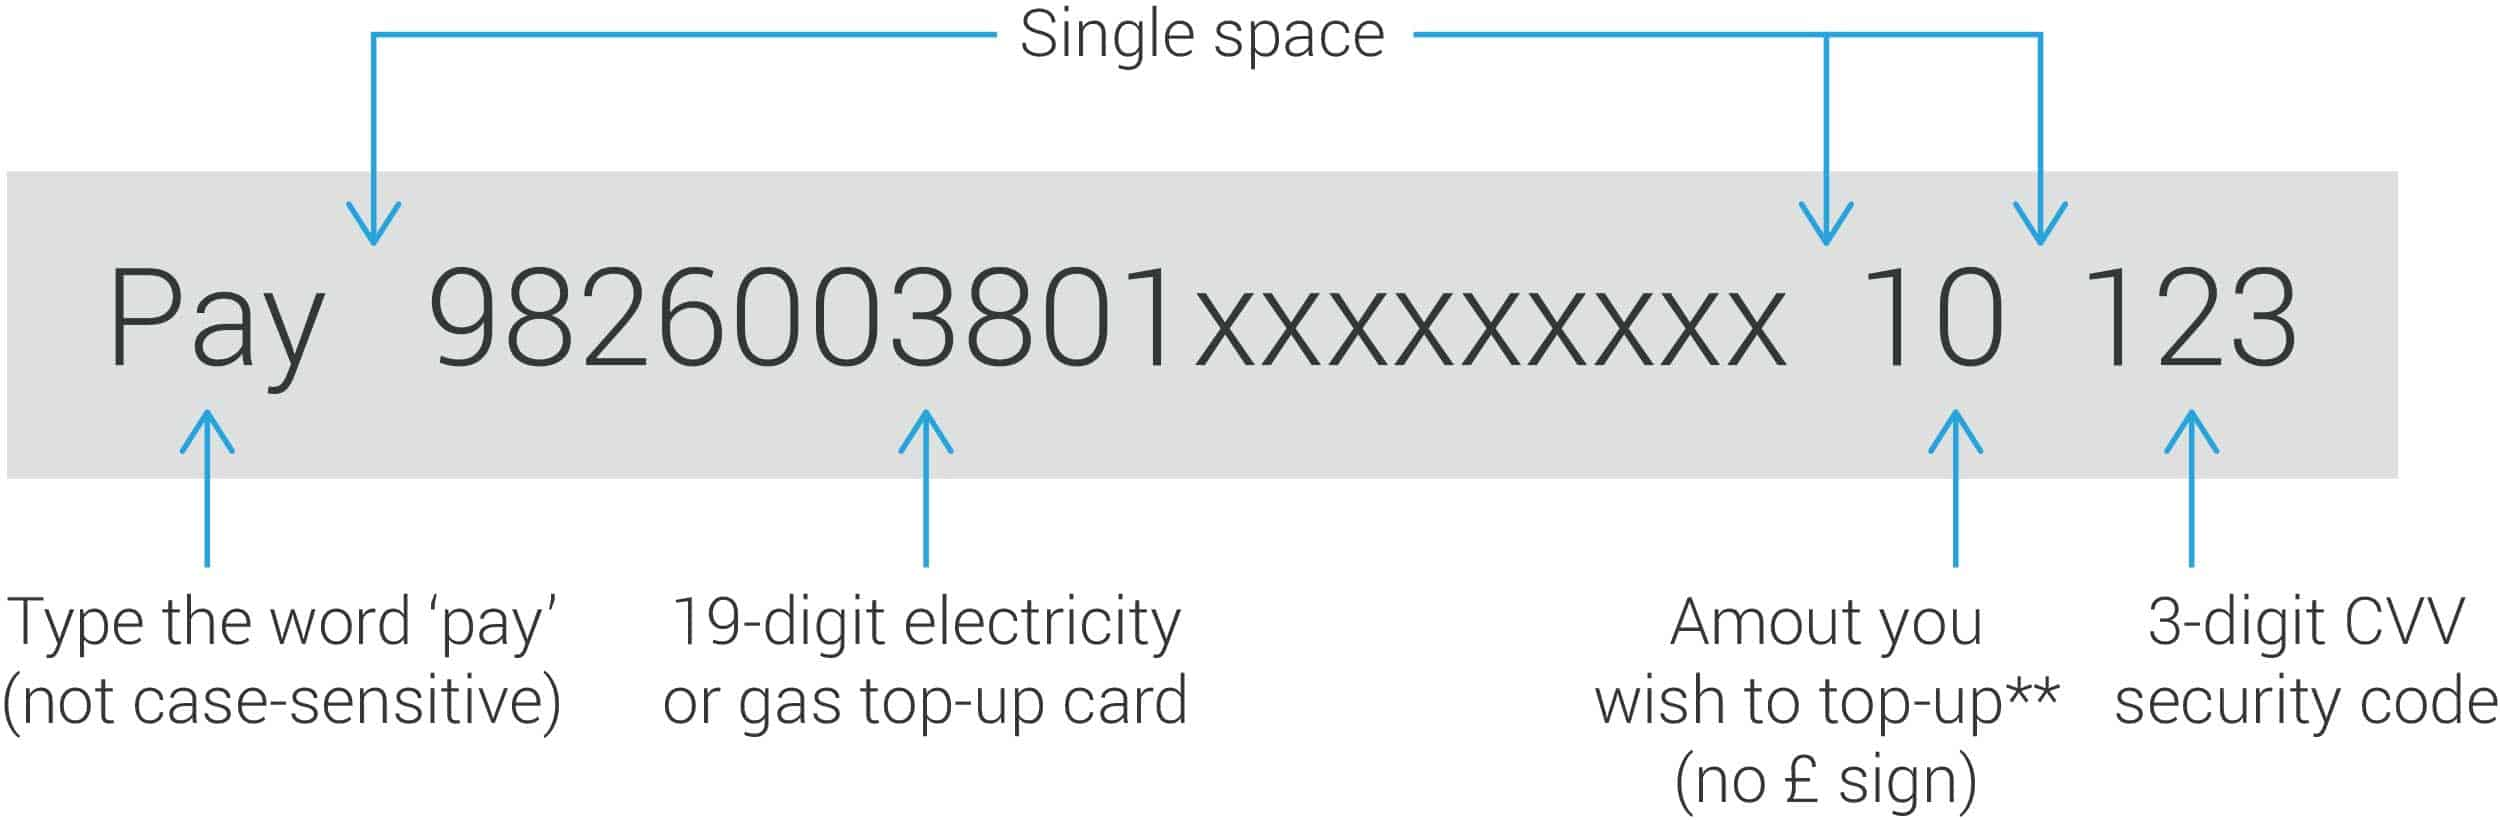 Utilita top-up by SMS instructions